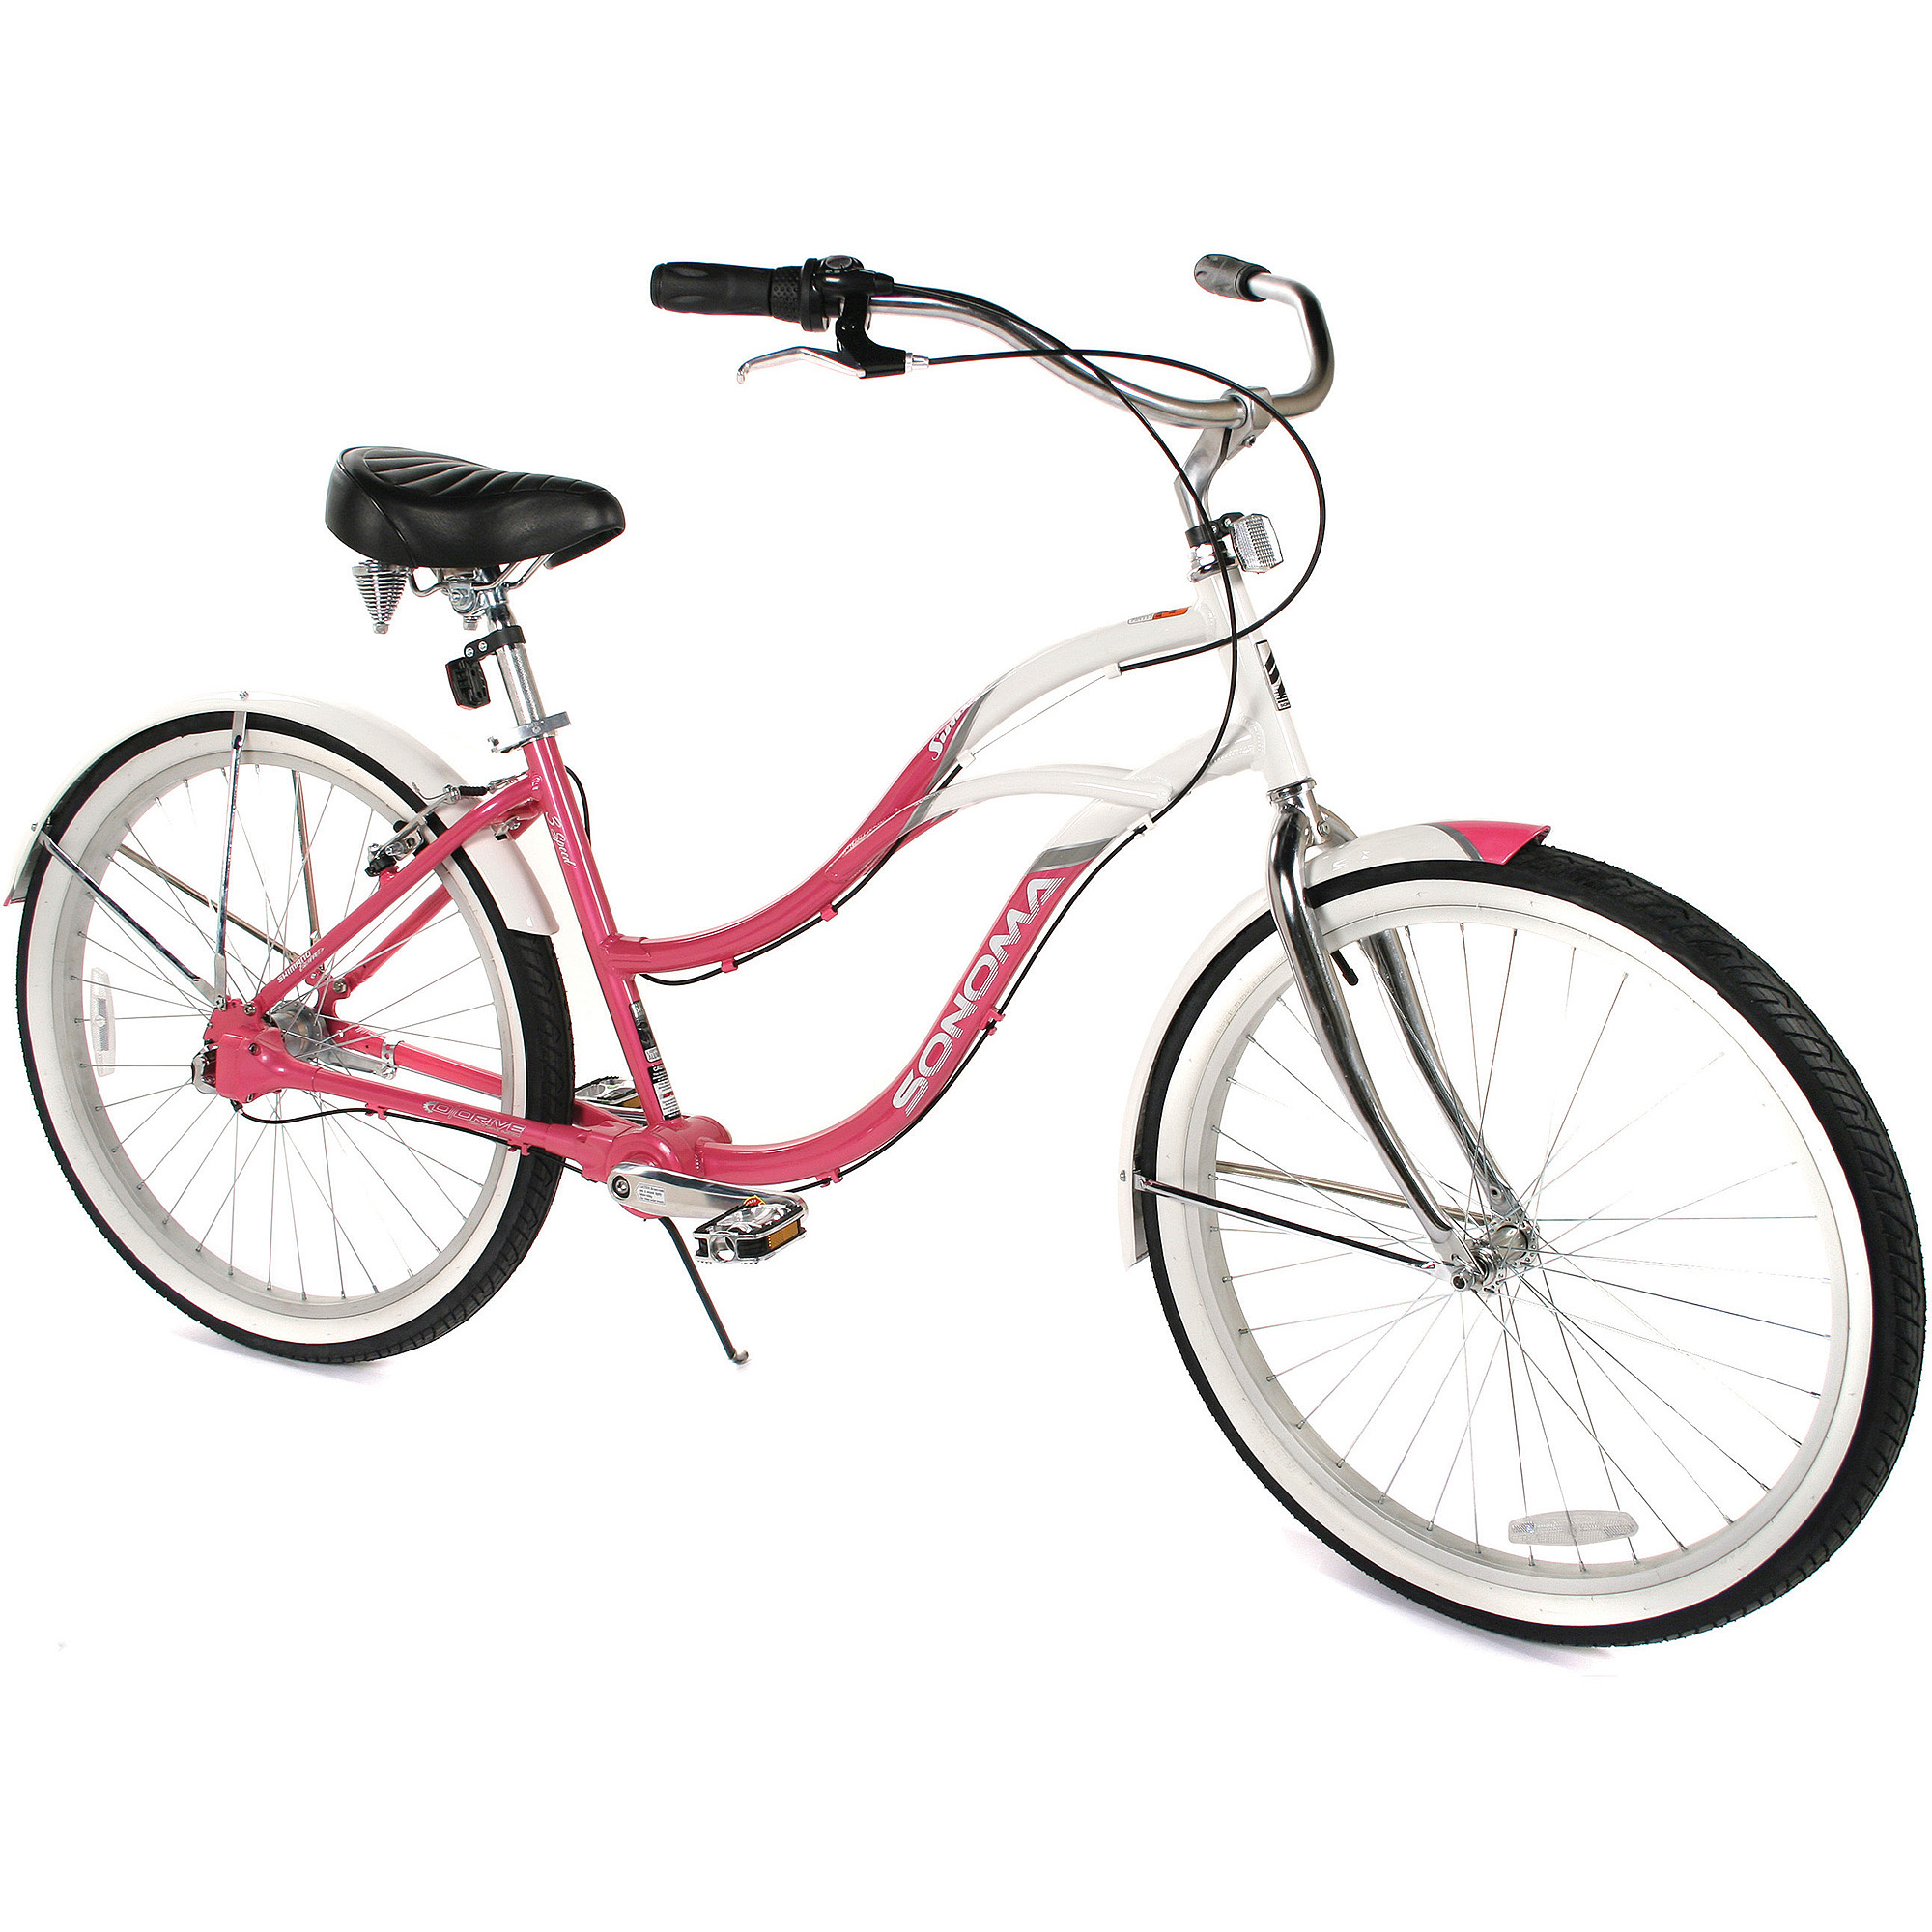 "Sonoma 26"" Women's Cruiser D-Drive Bicycle"